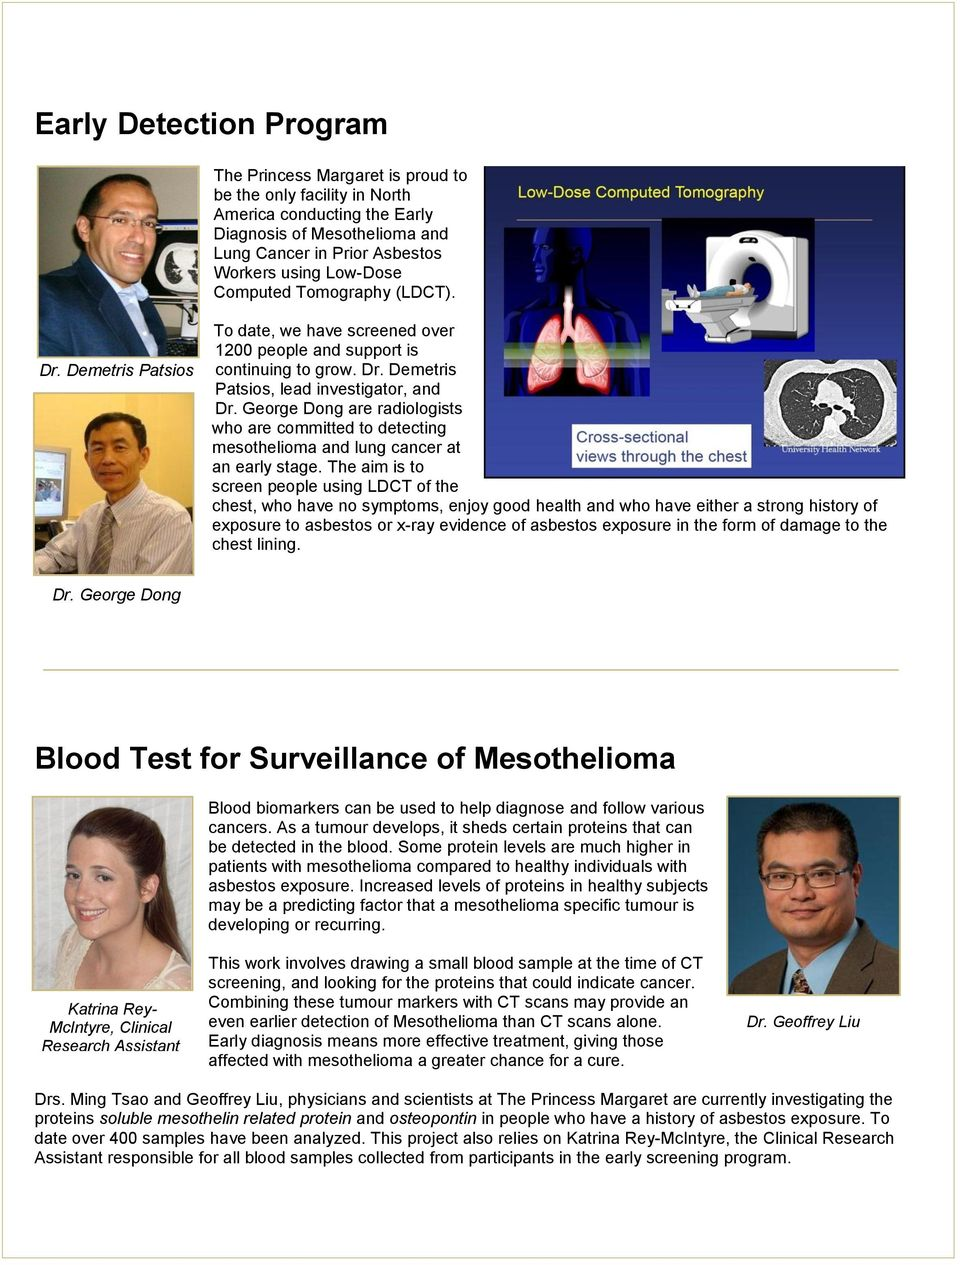 George Dong are radiologists who are committed to detecting mesothelioma and lung cancer at an early stage.